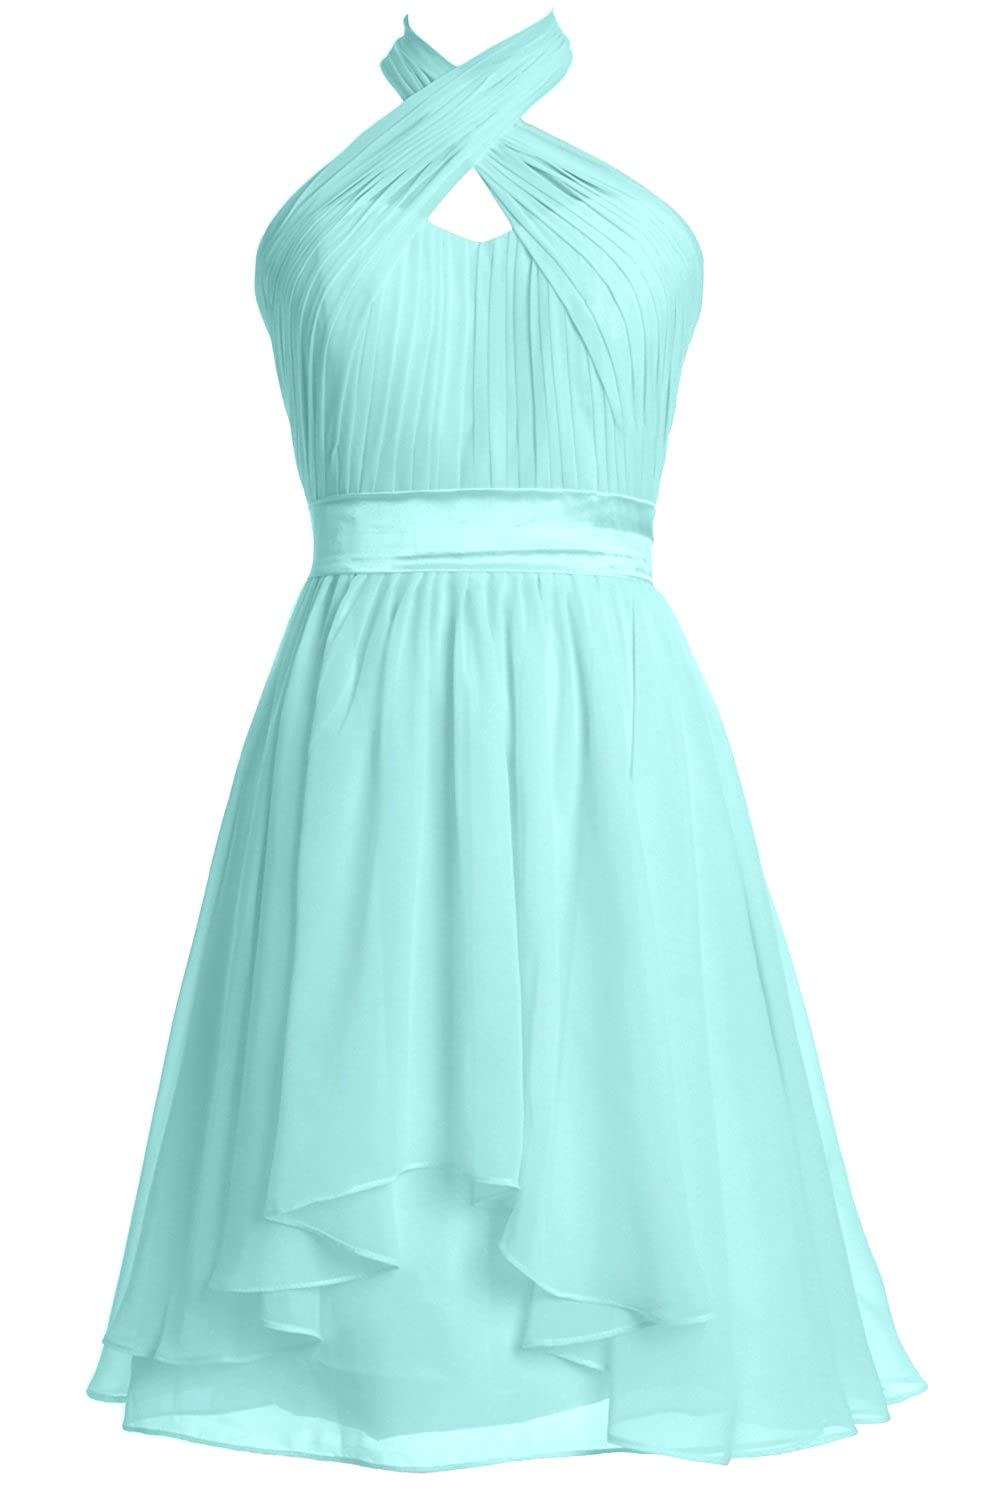 Gown Macloth Wedding Party Women Formal Length Halter Knee WH9ED2I